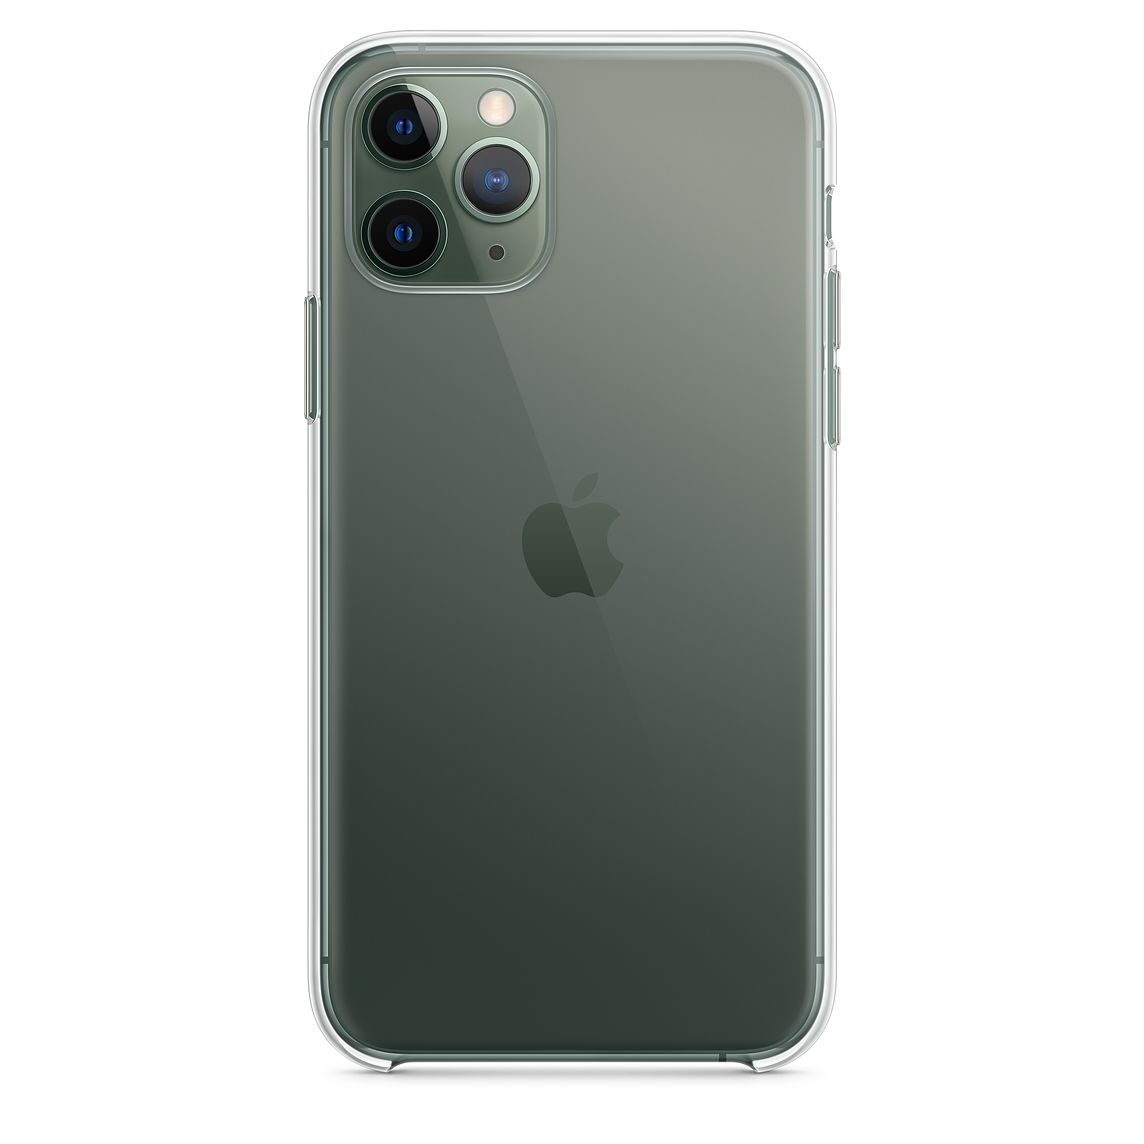 Apple's Clear Case for the iPhone 11 Pro